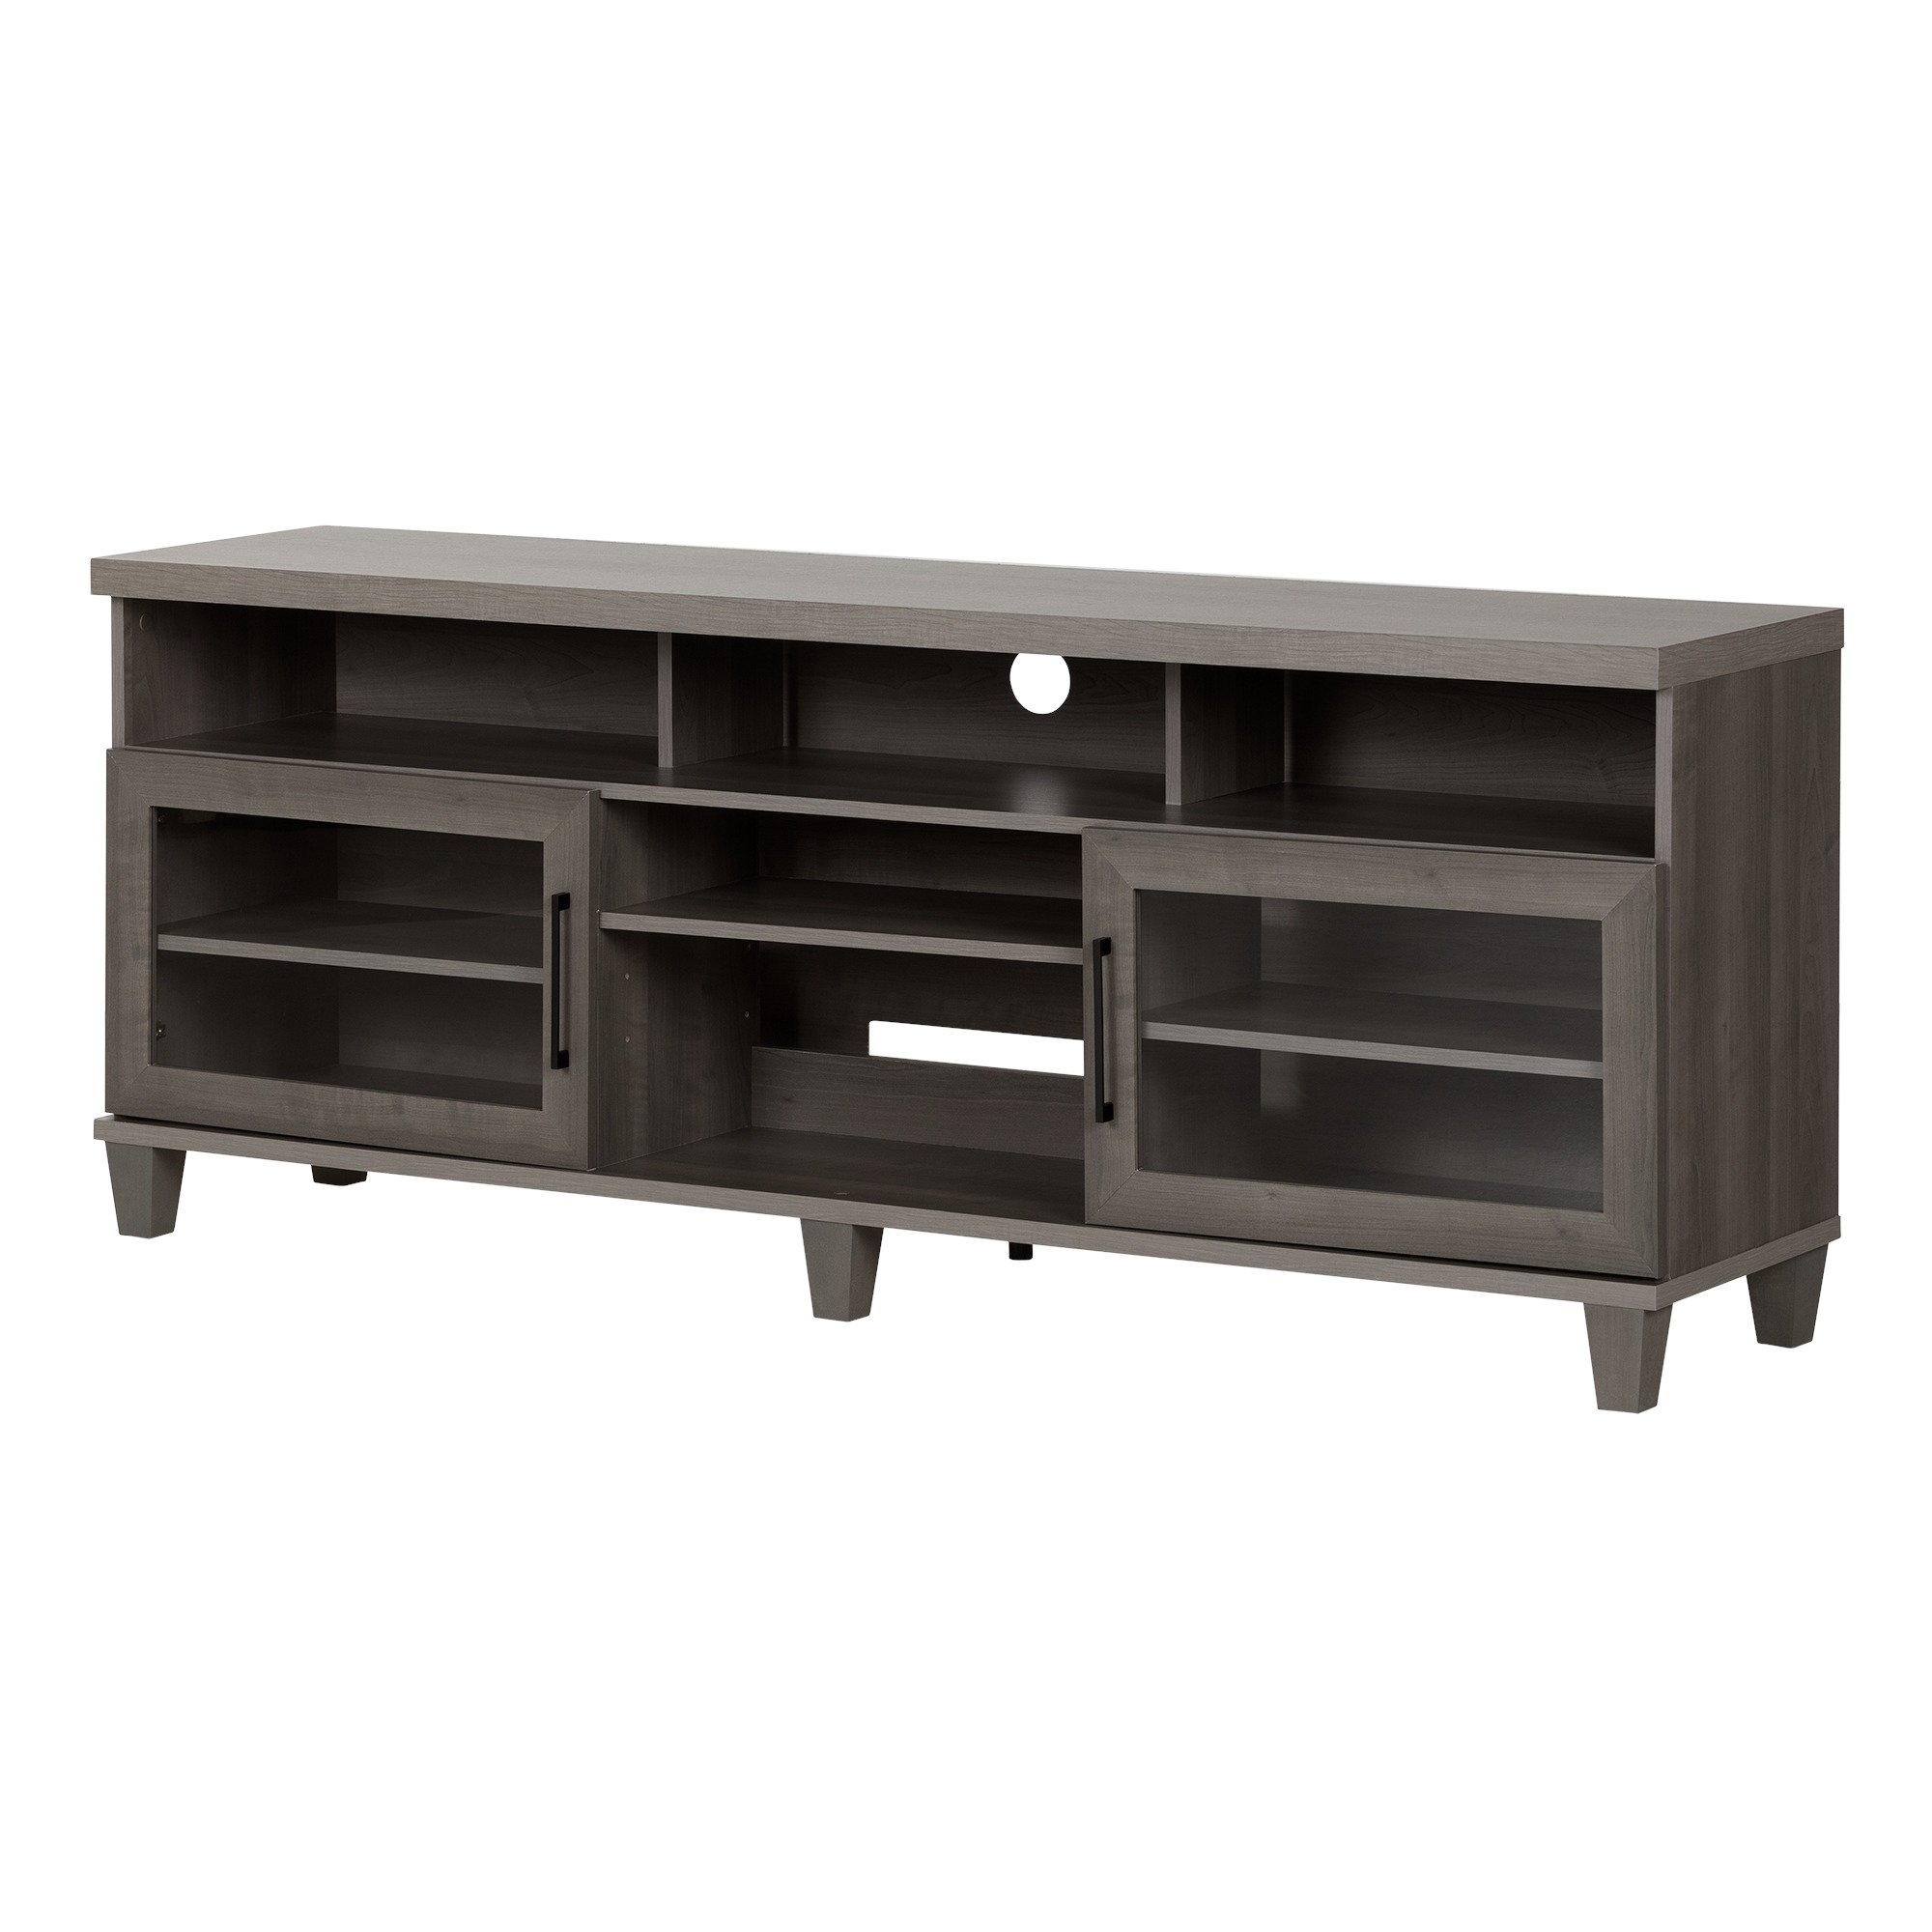 South Shore Large TV Stand, Glass Doors, Fits TVs up to 75'', Gray Maple by South Shore